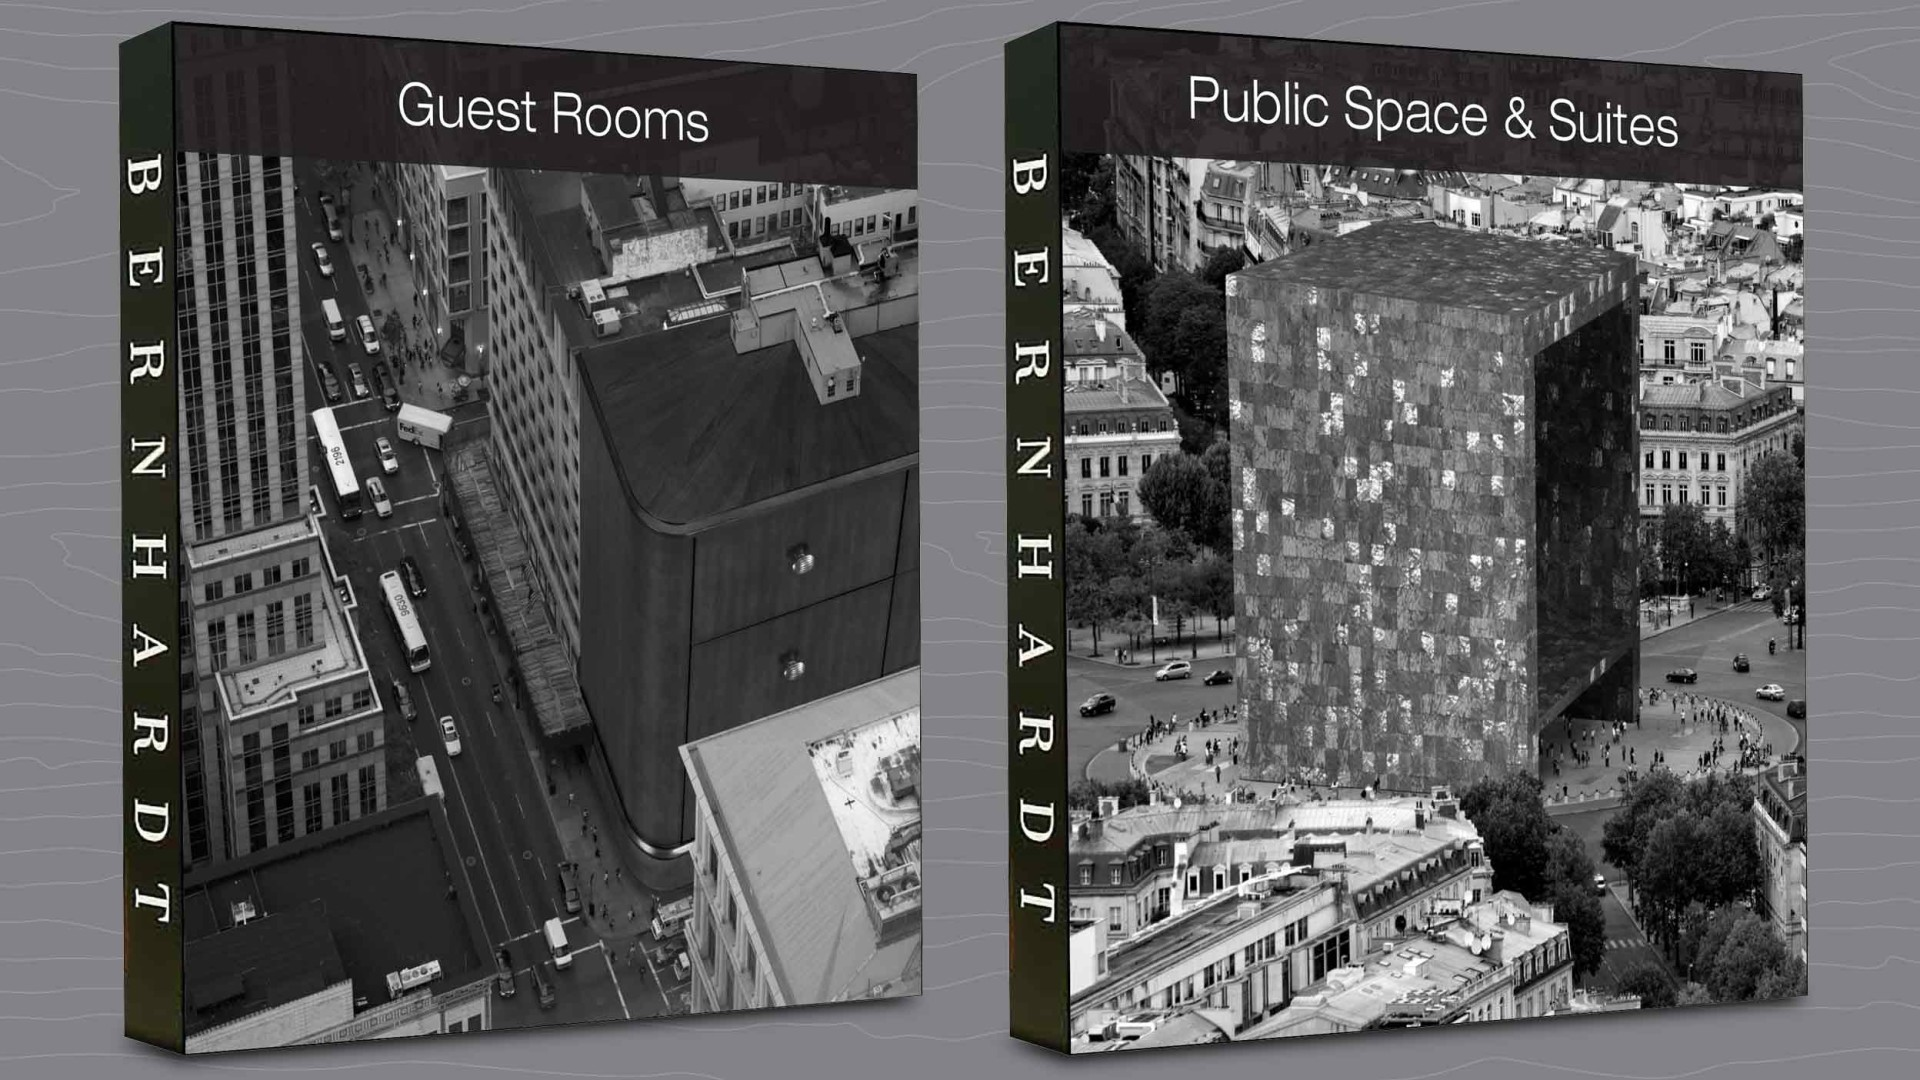 Guest Rooms and Public Space & Suites Display Walls